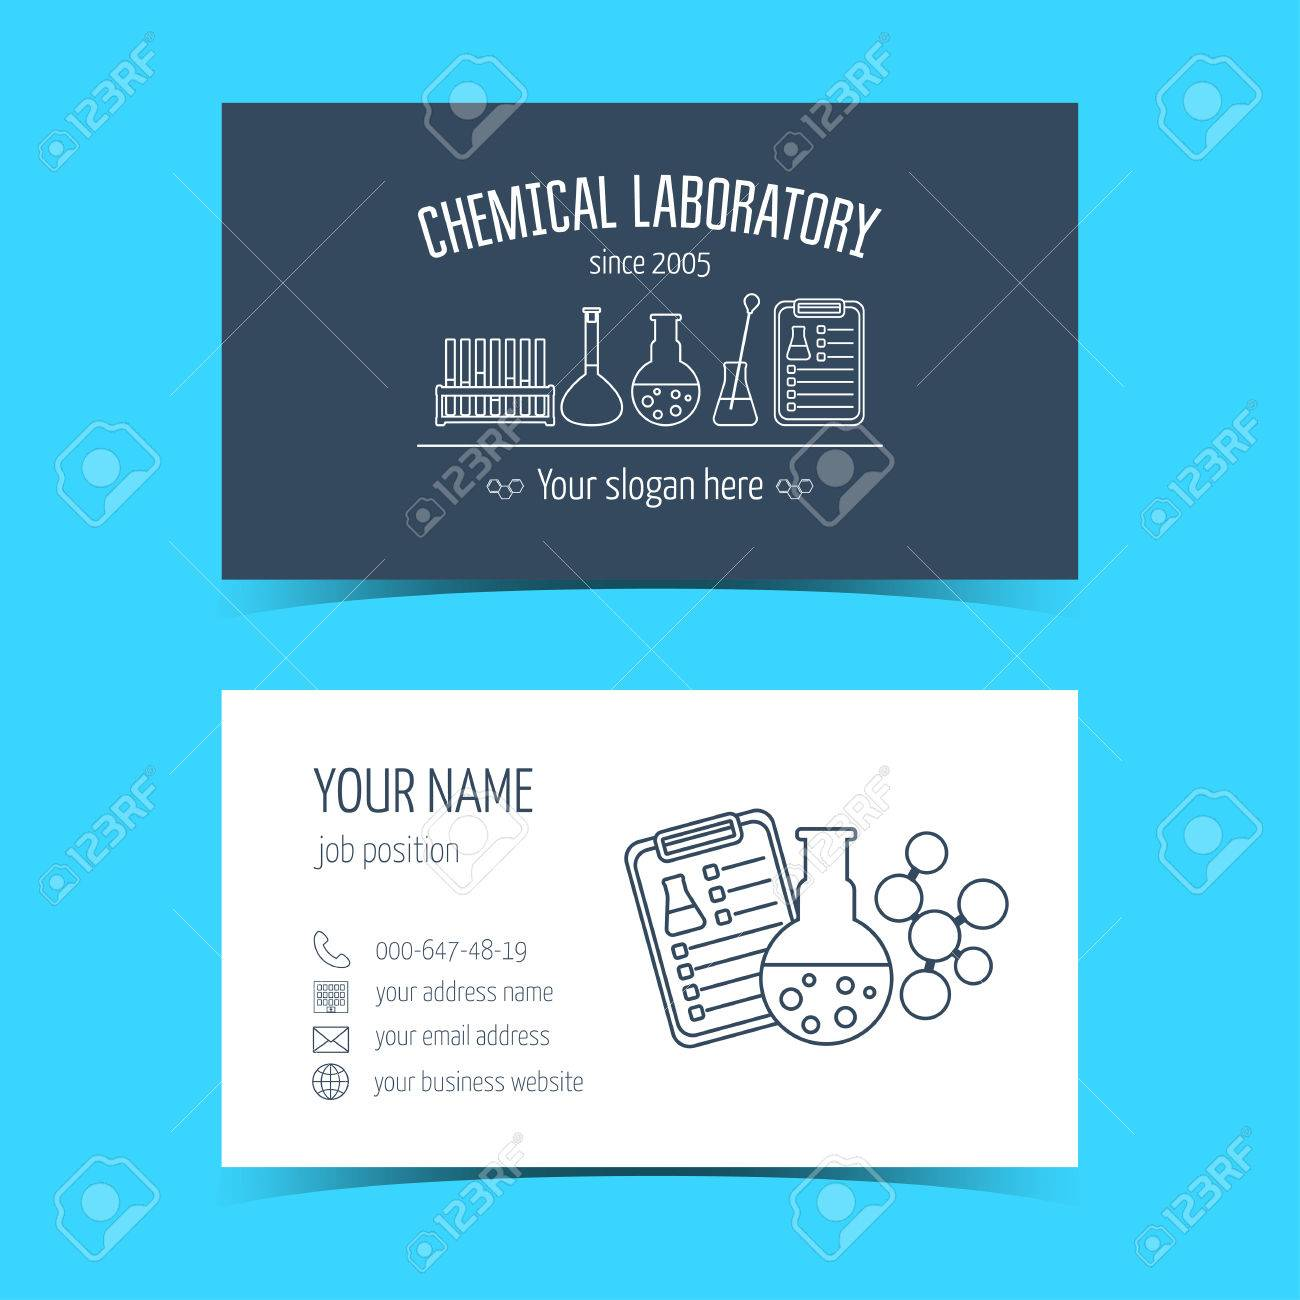 Business Cards For Chemical Laboratory And Scientific Companies ...